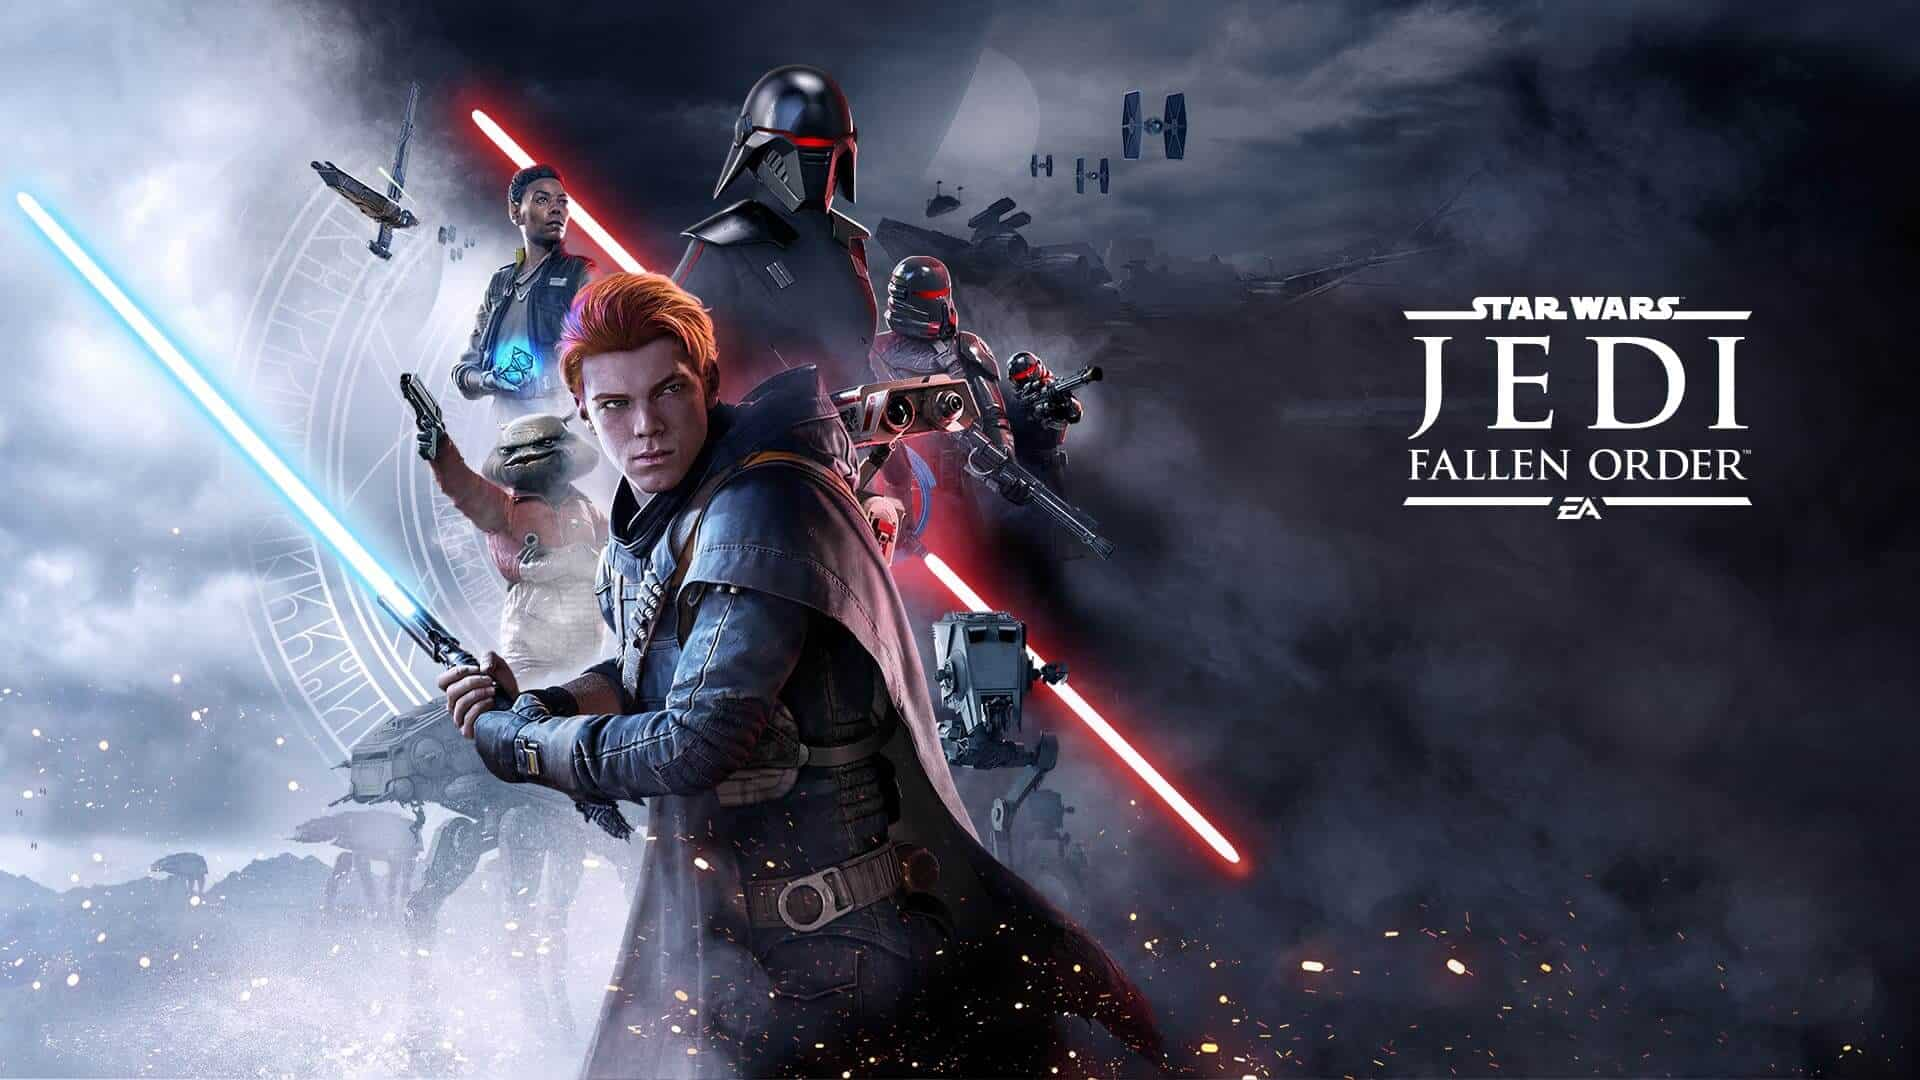 Star Wars Jedi: Fallen Order Adds Mediation Training, New Journey+ And More